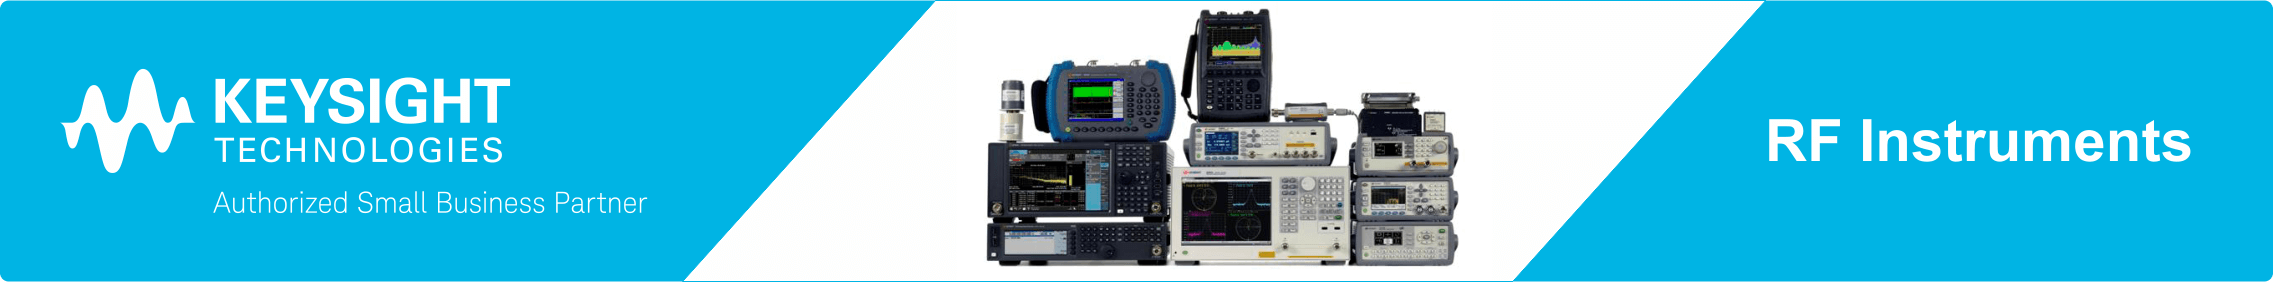 Keysight RF Instruments web banner